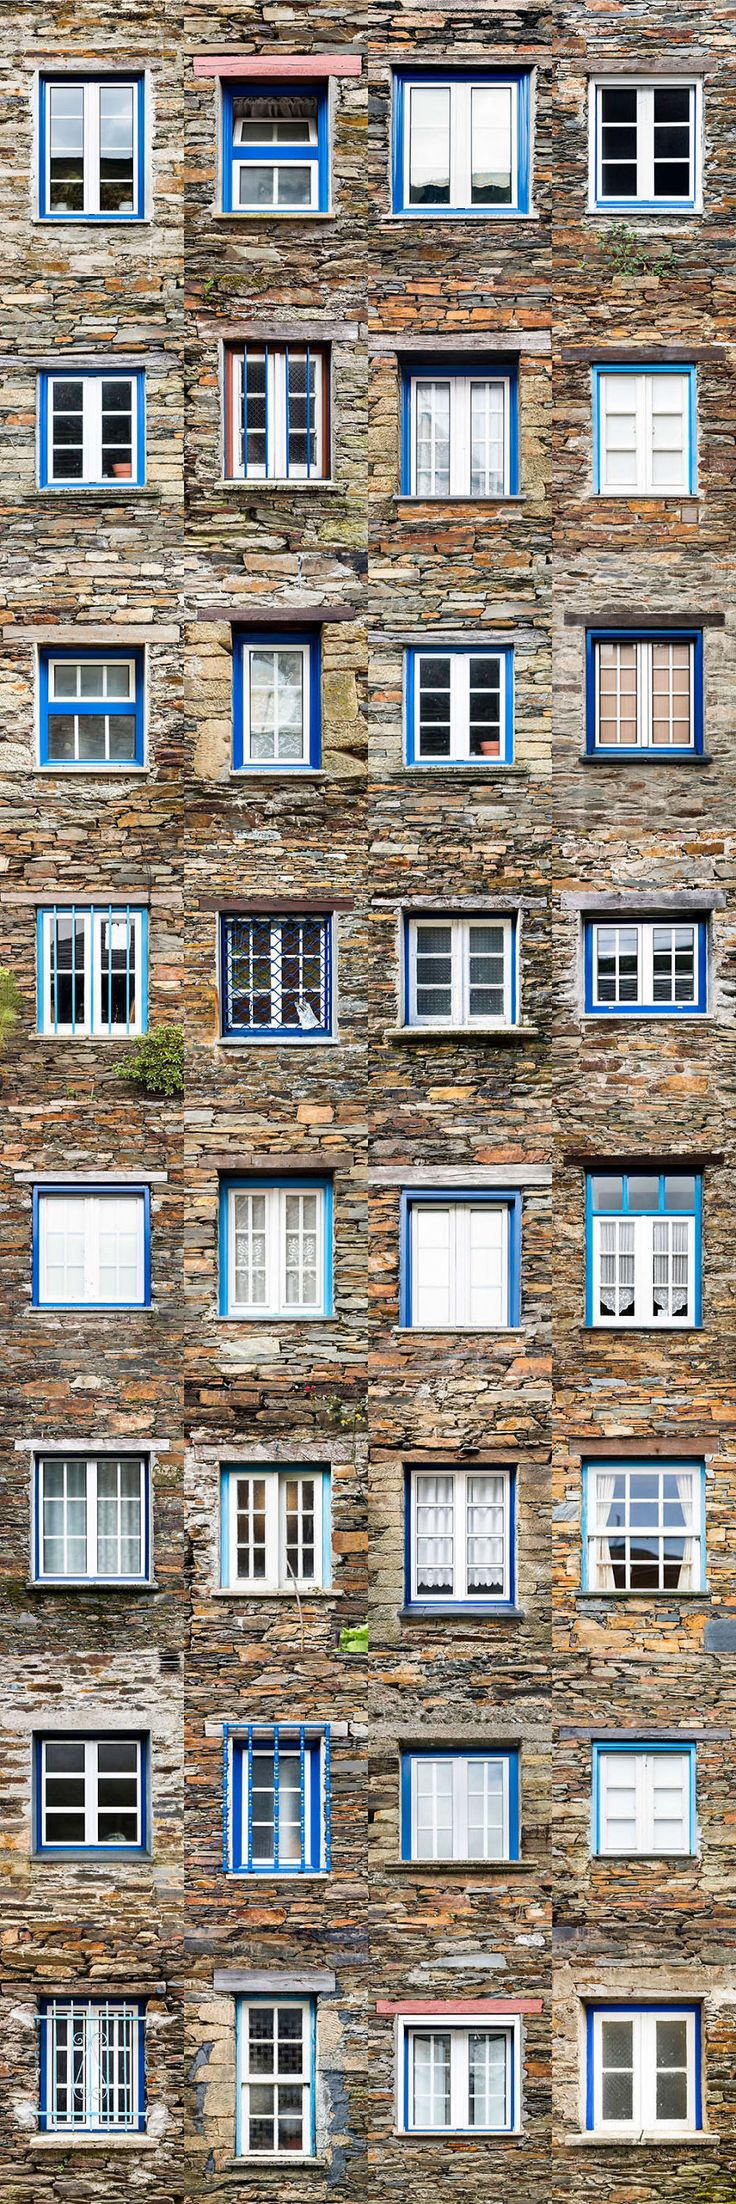 I Traveled All Over #Portugal To Photograph Windows, And Captured More Than 3200 Of Them - via BoredPanda 23-10-2017 | If you are planning a trip to Portugal, you can see which are the most beautiful cities to visit or what kind of architecture you like the most. Photo: Piodao